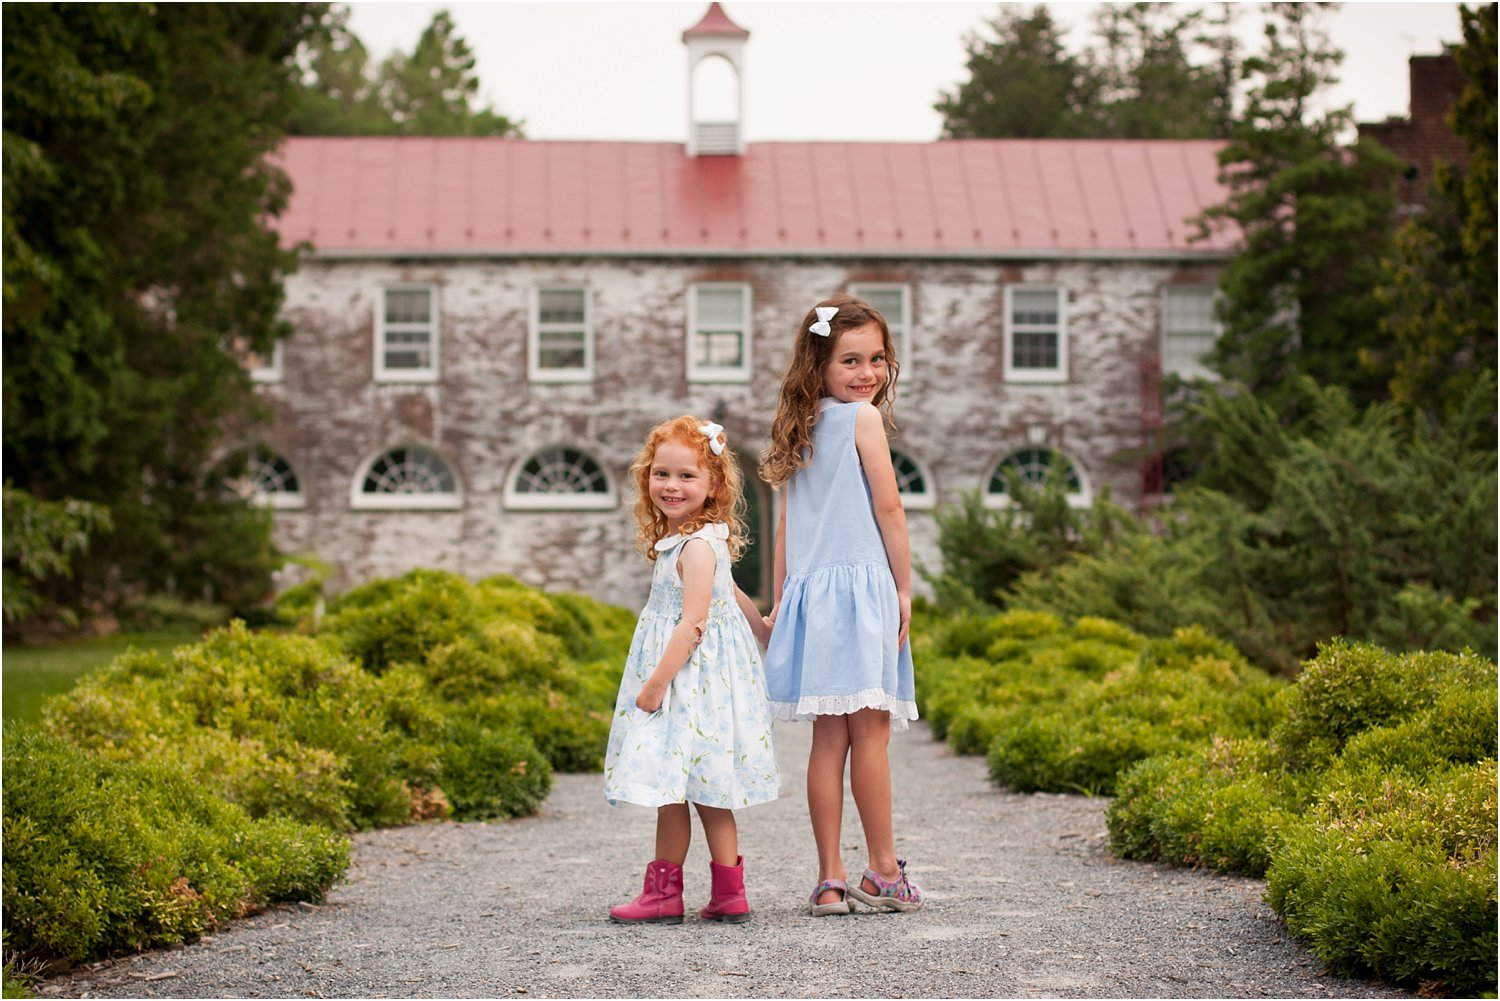 Blandy_Arboretum_Sibling_Mini_Sessions_Carpenters_0004.jpg